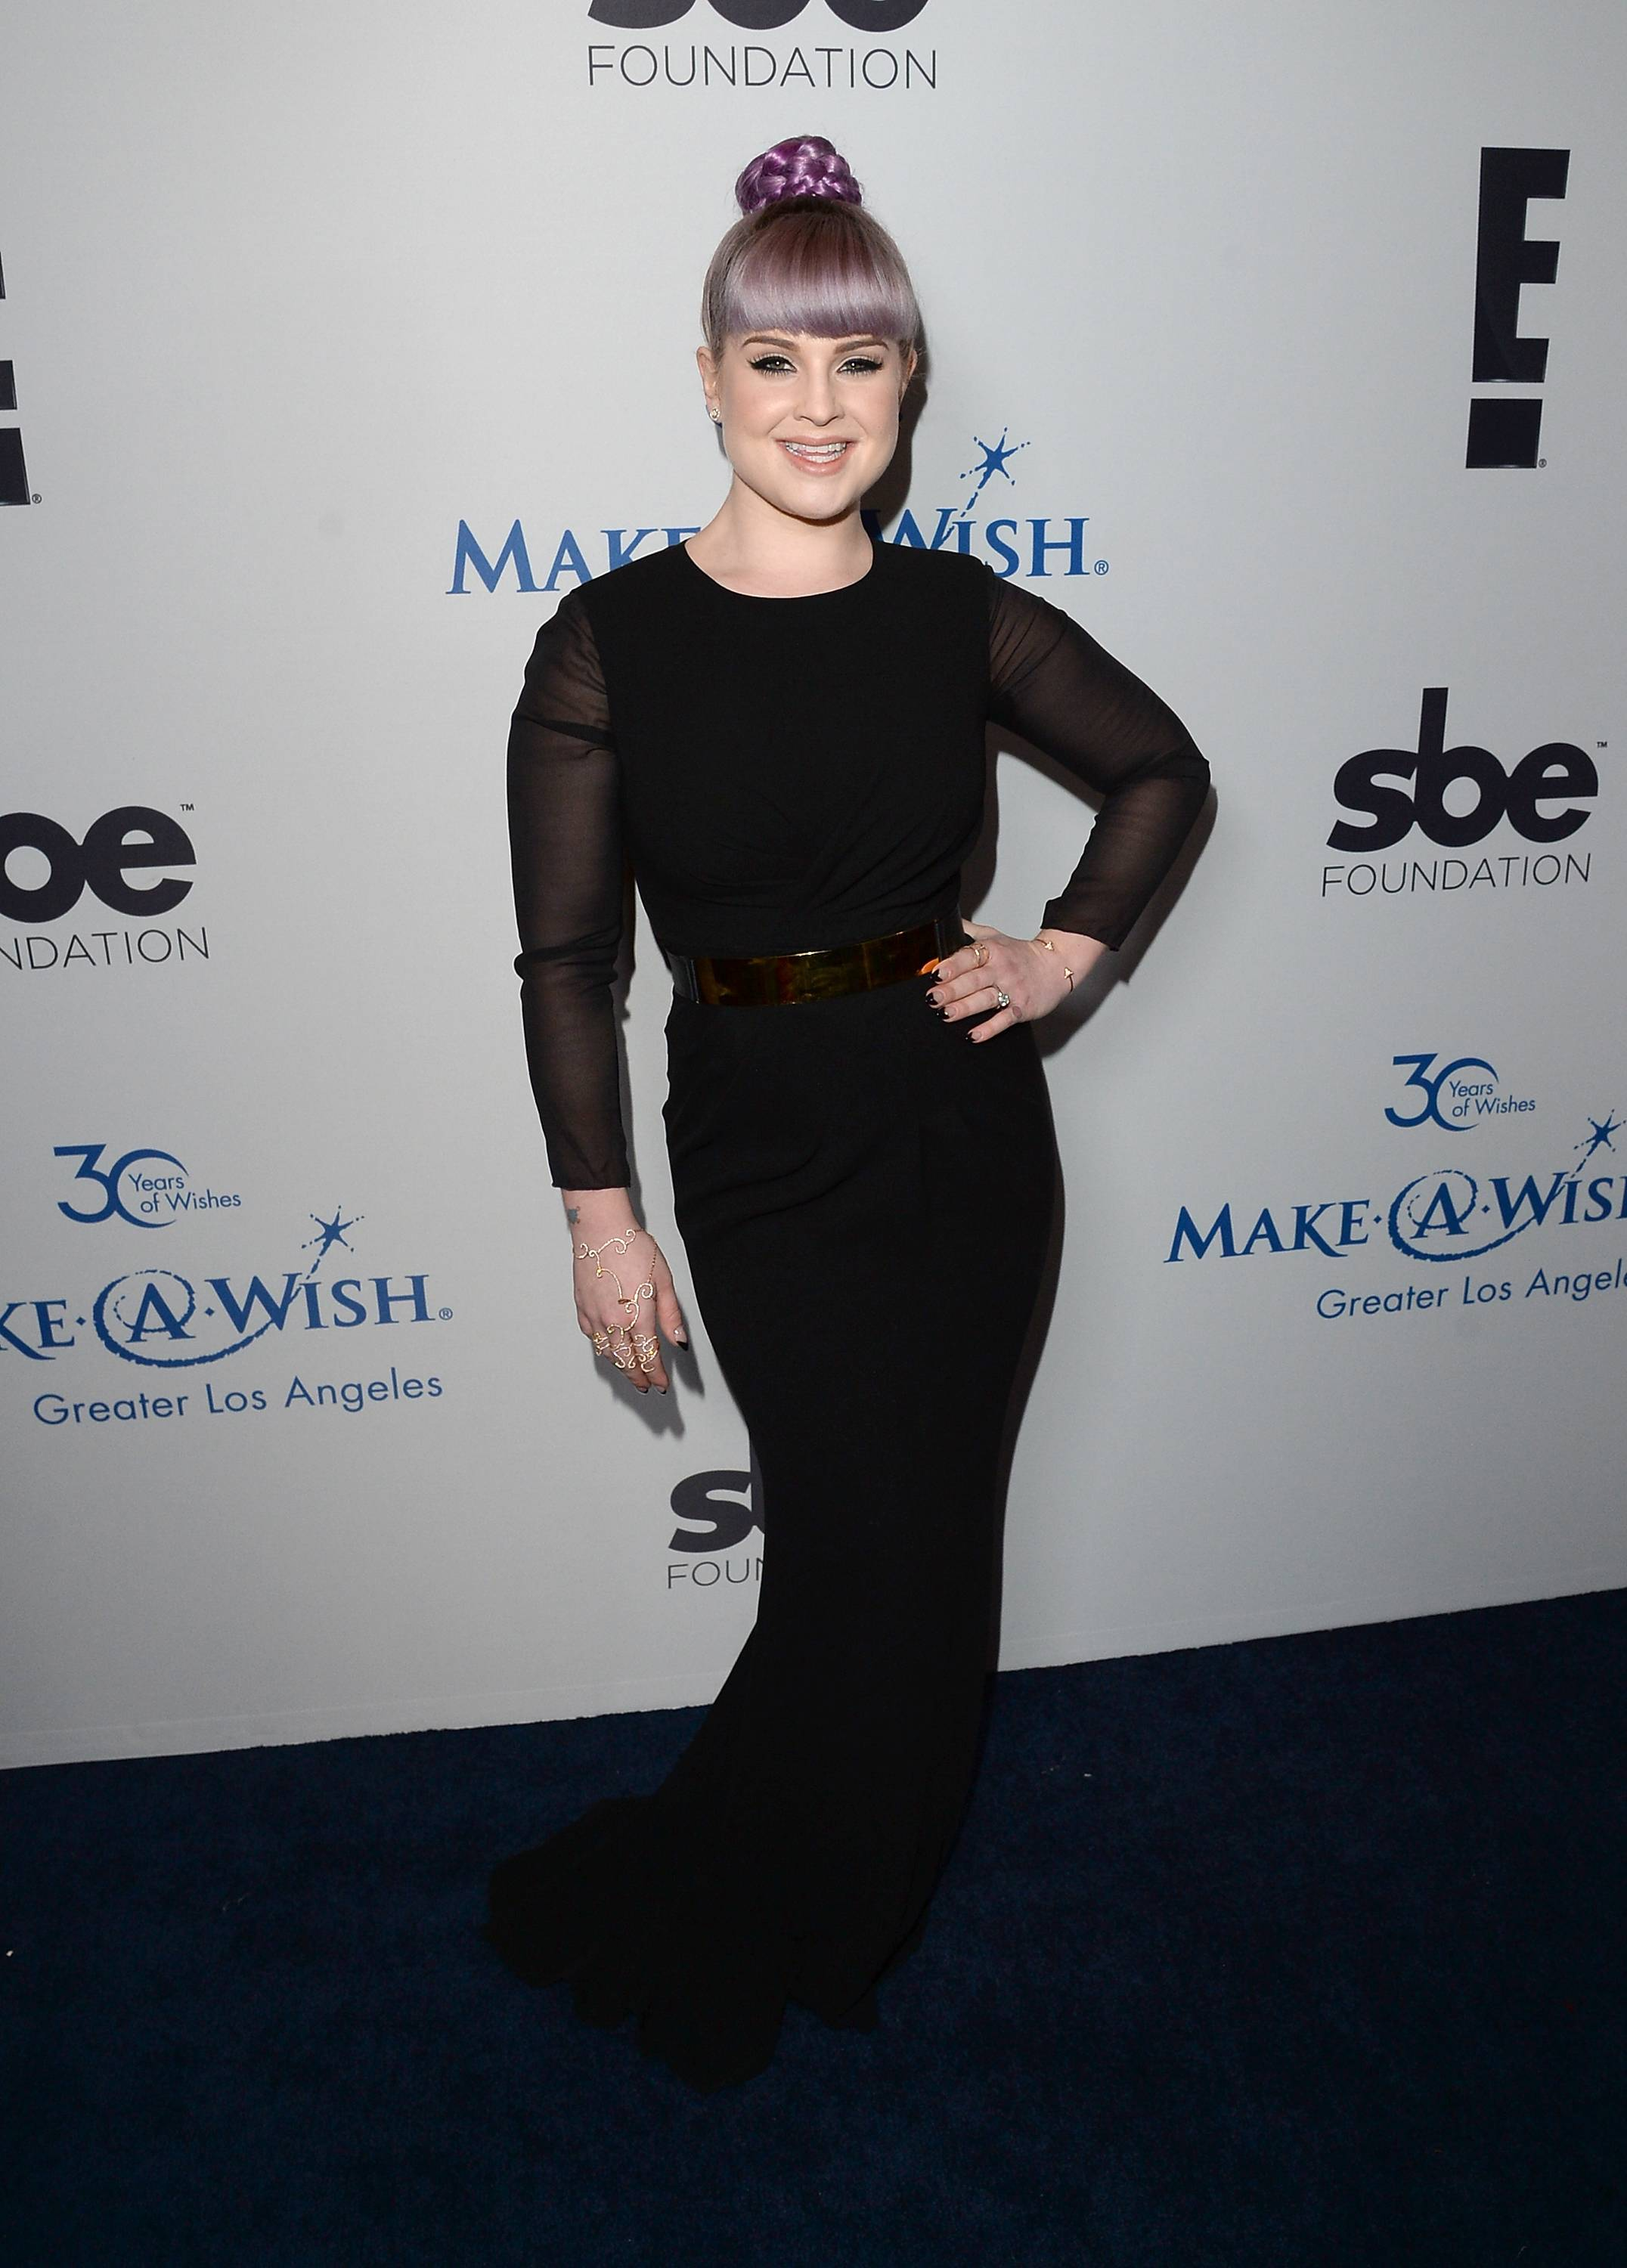 Make-A-Wish Greater Los Angeles 30th Anniversary Gala